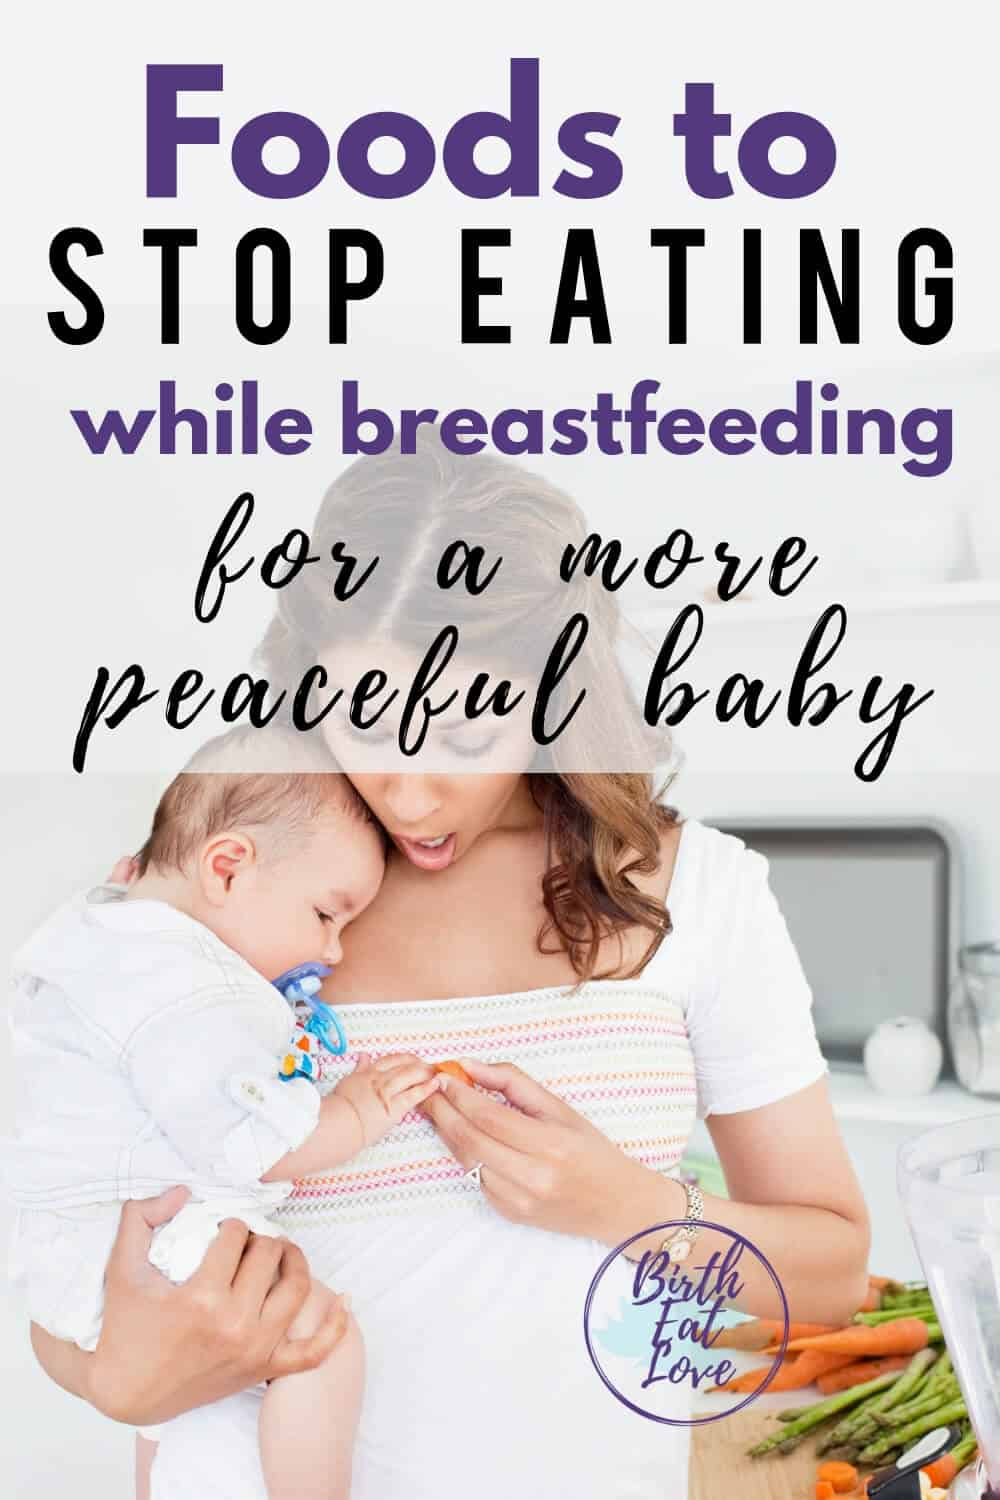 Breastfed Baby super colicky, fussy or have lots of gas? 5 lactation foods to avoid that can help your newborn calm down and relax. Discover the secret that most first time breastfeeding moms don't know so that you can a have a more peaceful baby! #baby #breastfeeding #breastfeedingfood